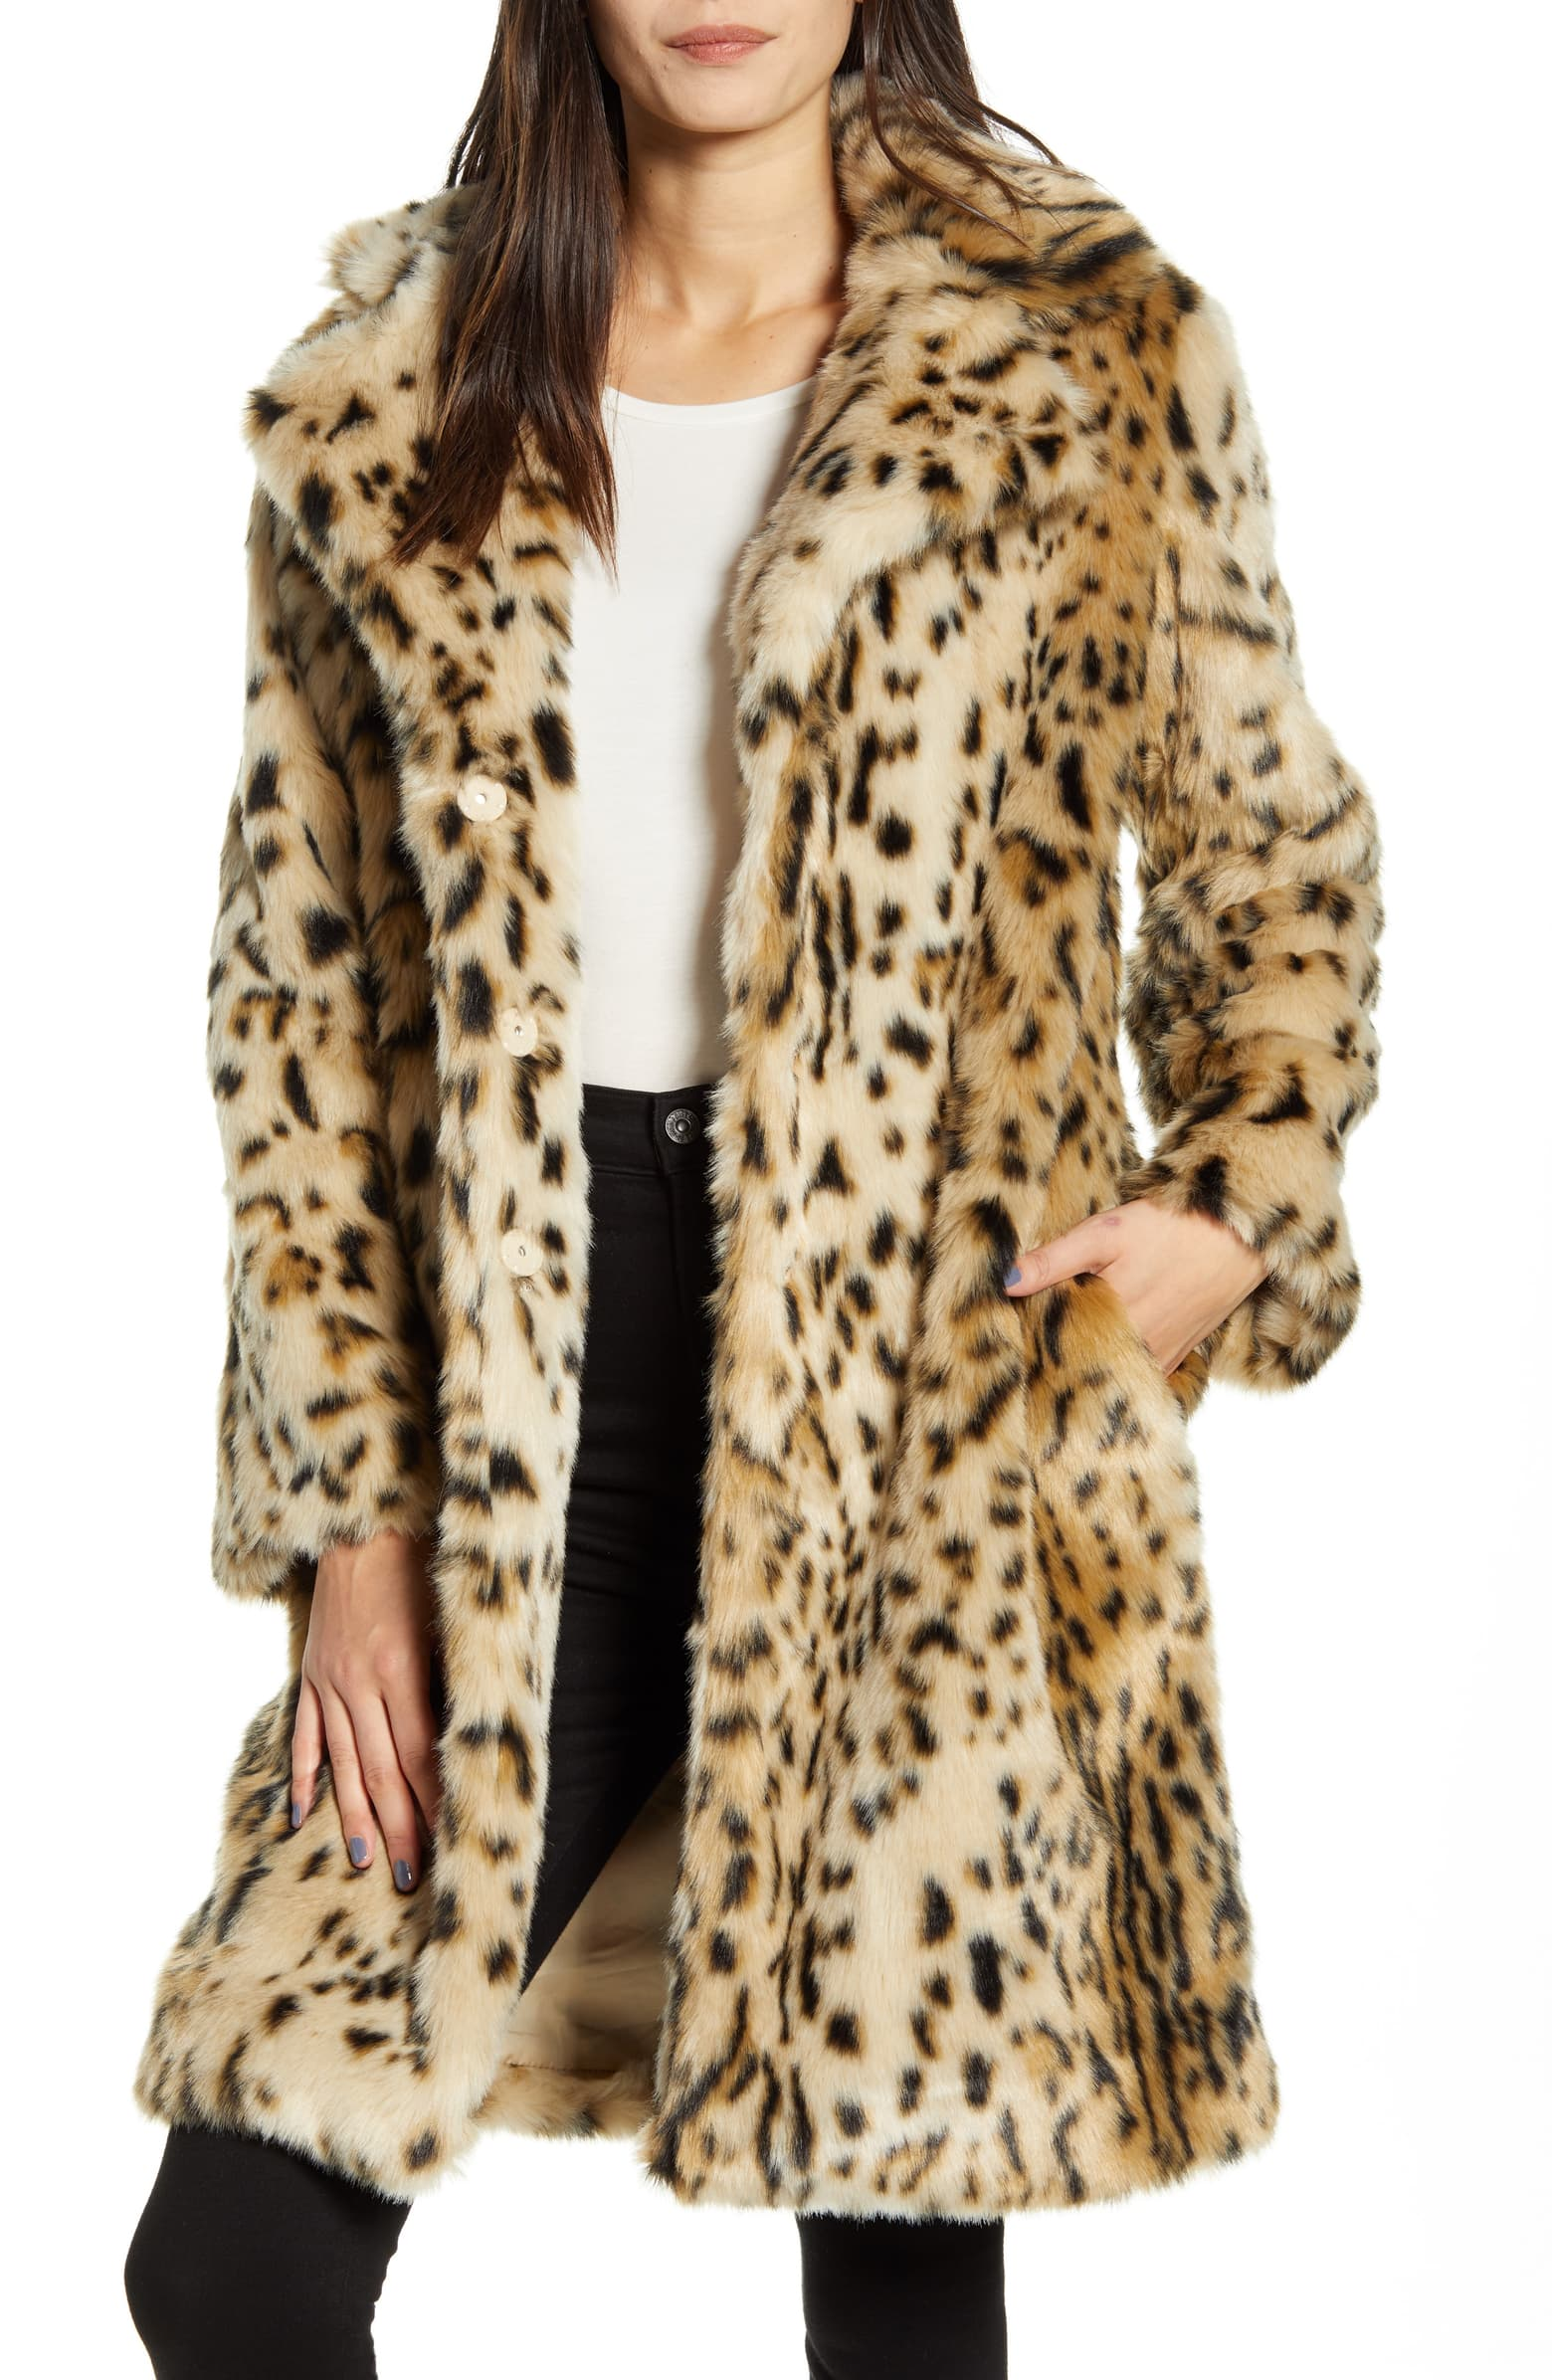 leopard print coats and jackets at every price point